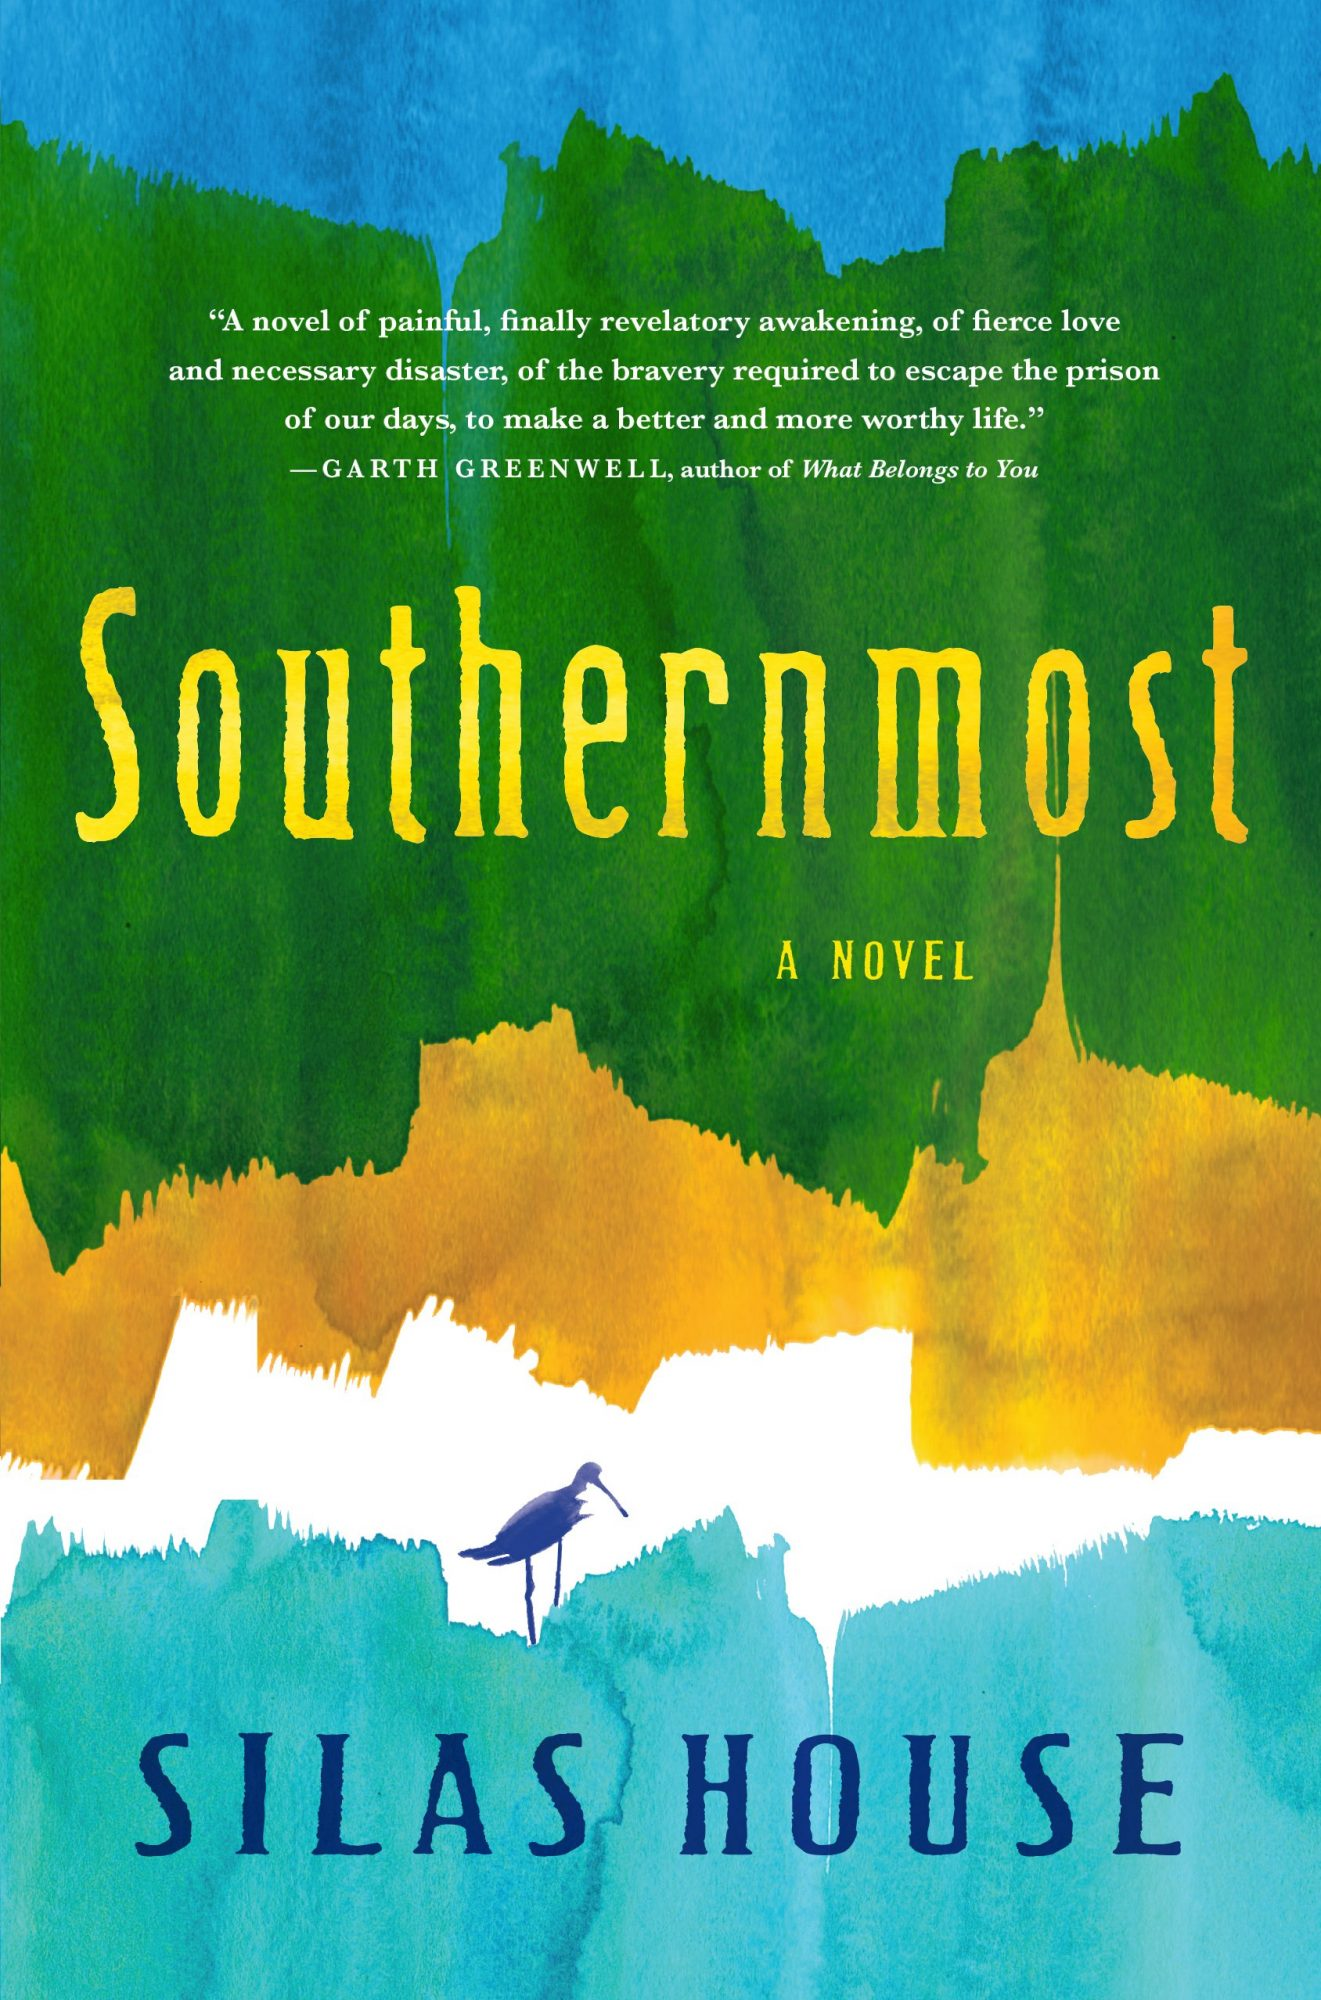 Southernmost by Silas House